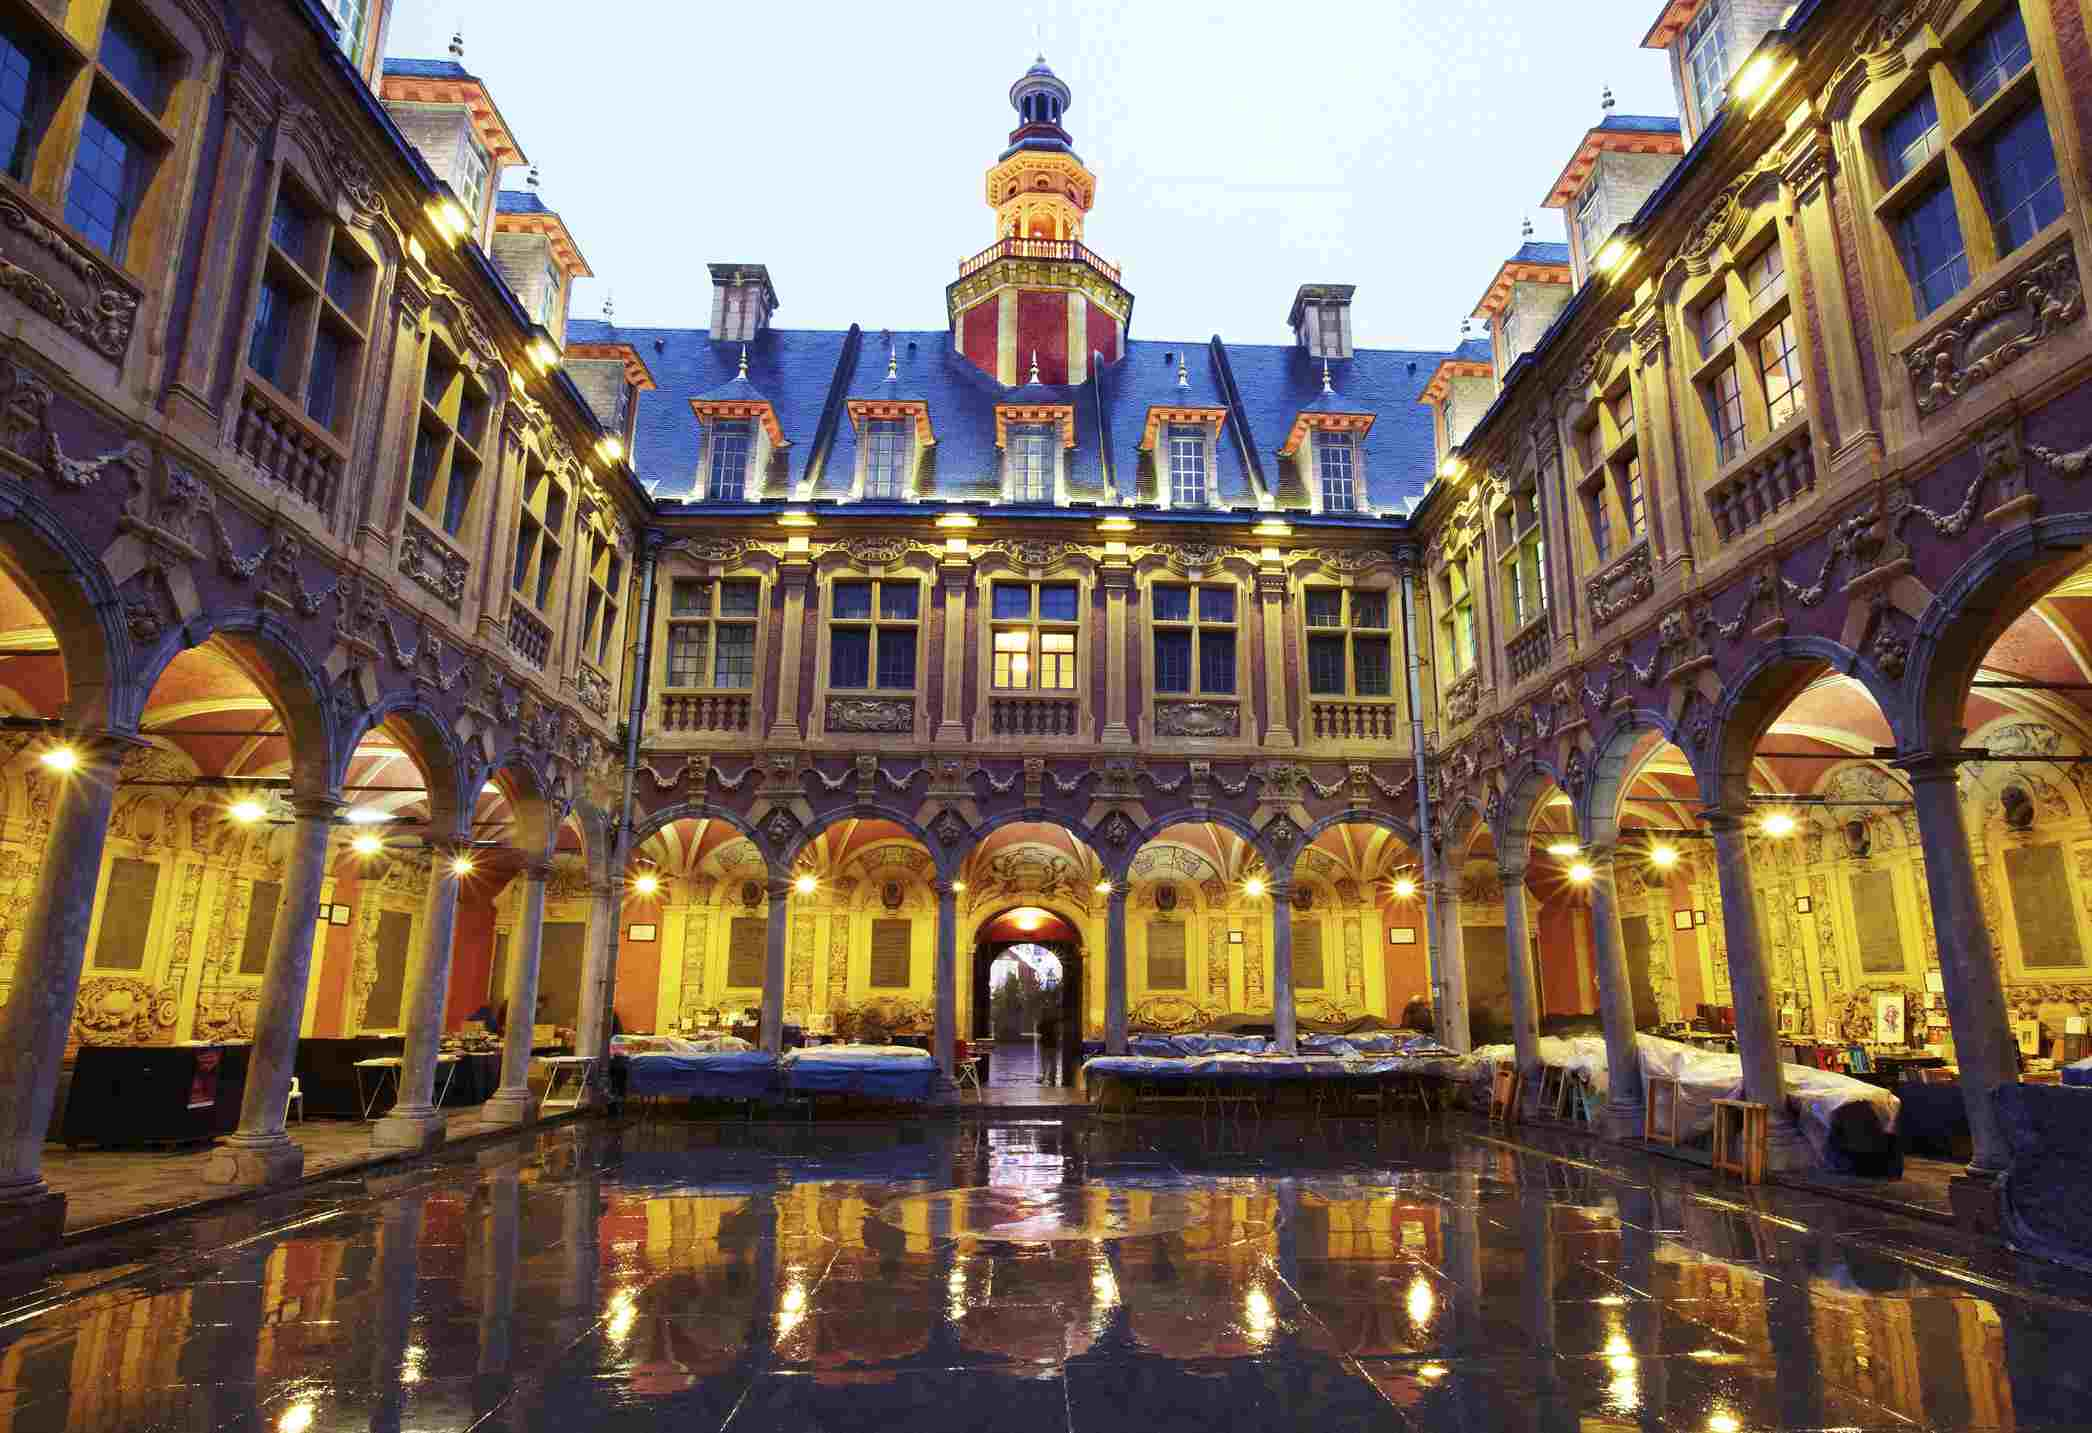 The Old Bourse (Stock Exchange) in Lille